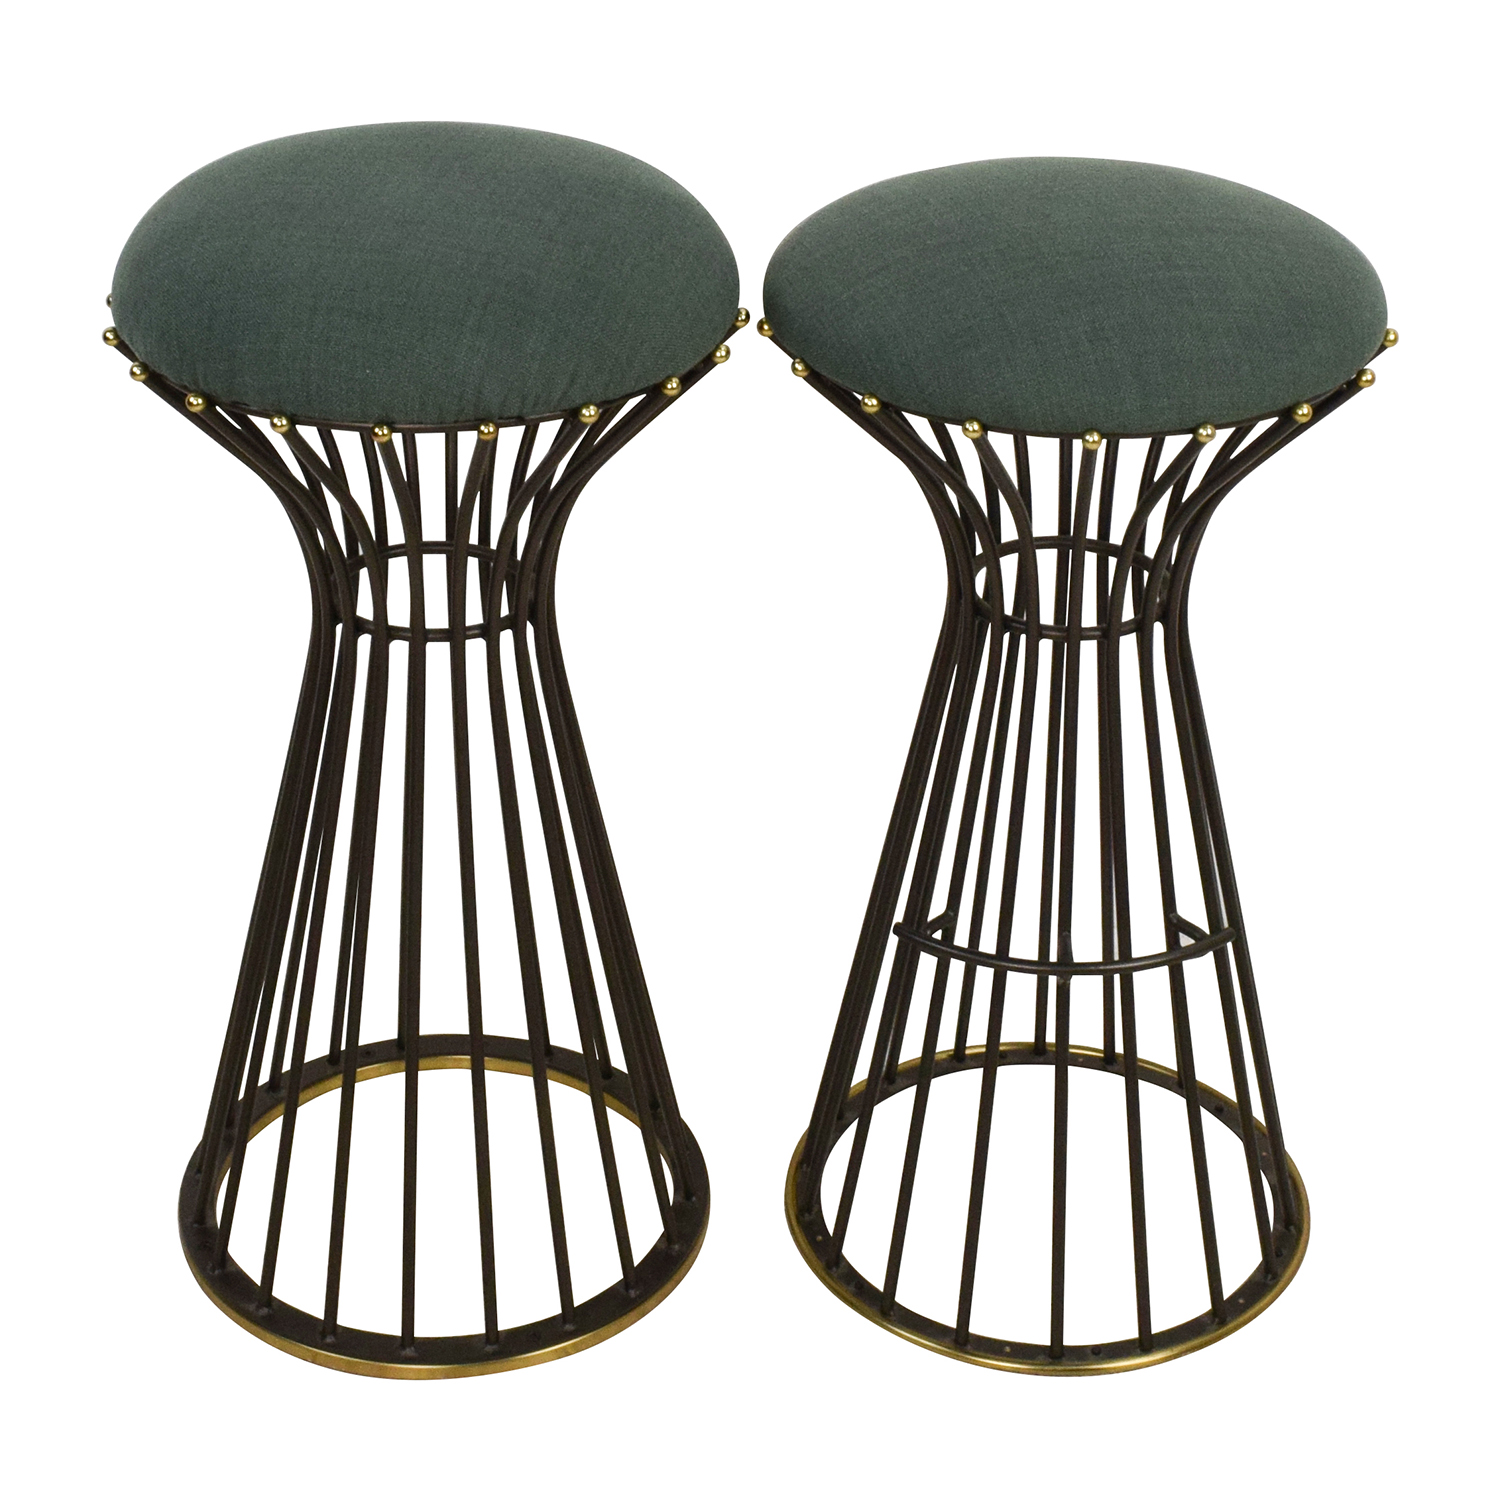 Upholstered Bar Stools used